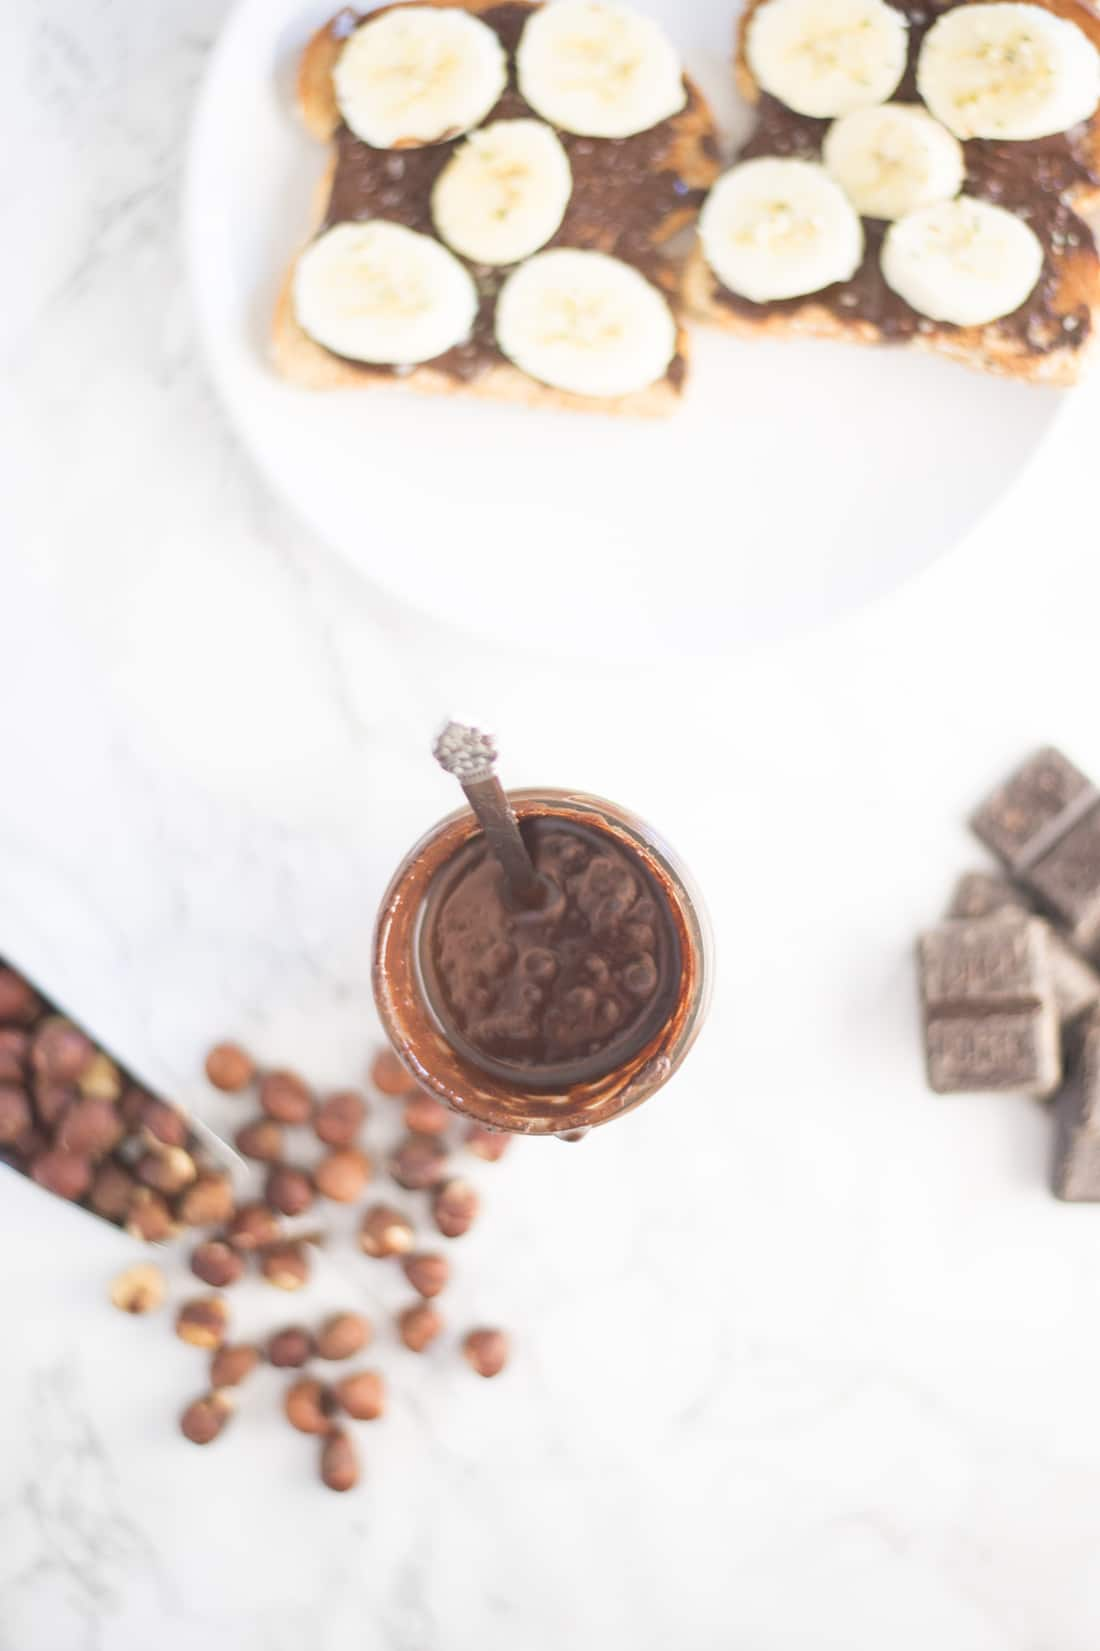 Homemade Nutella -- Try this homemade vegan Nutella with only 5 ingredients for a healthier sweet spread! - mindfulavocado